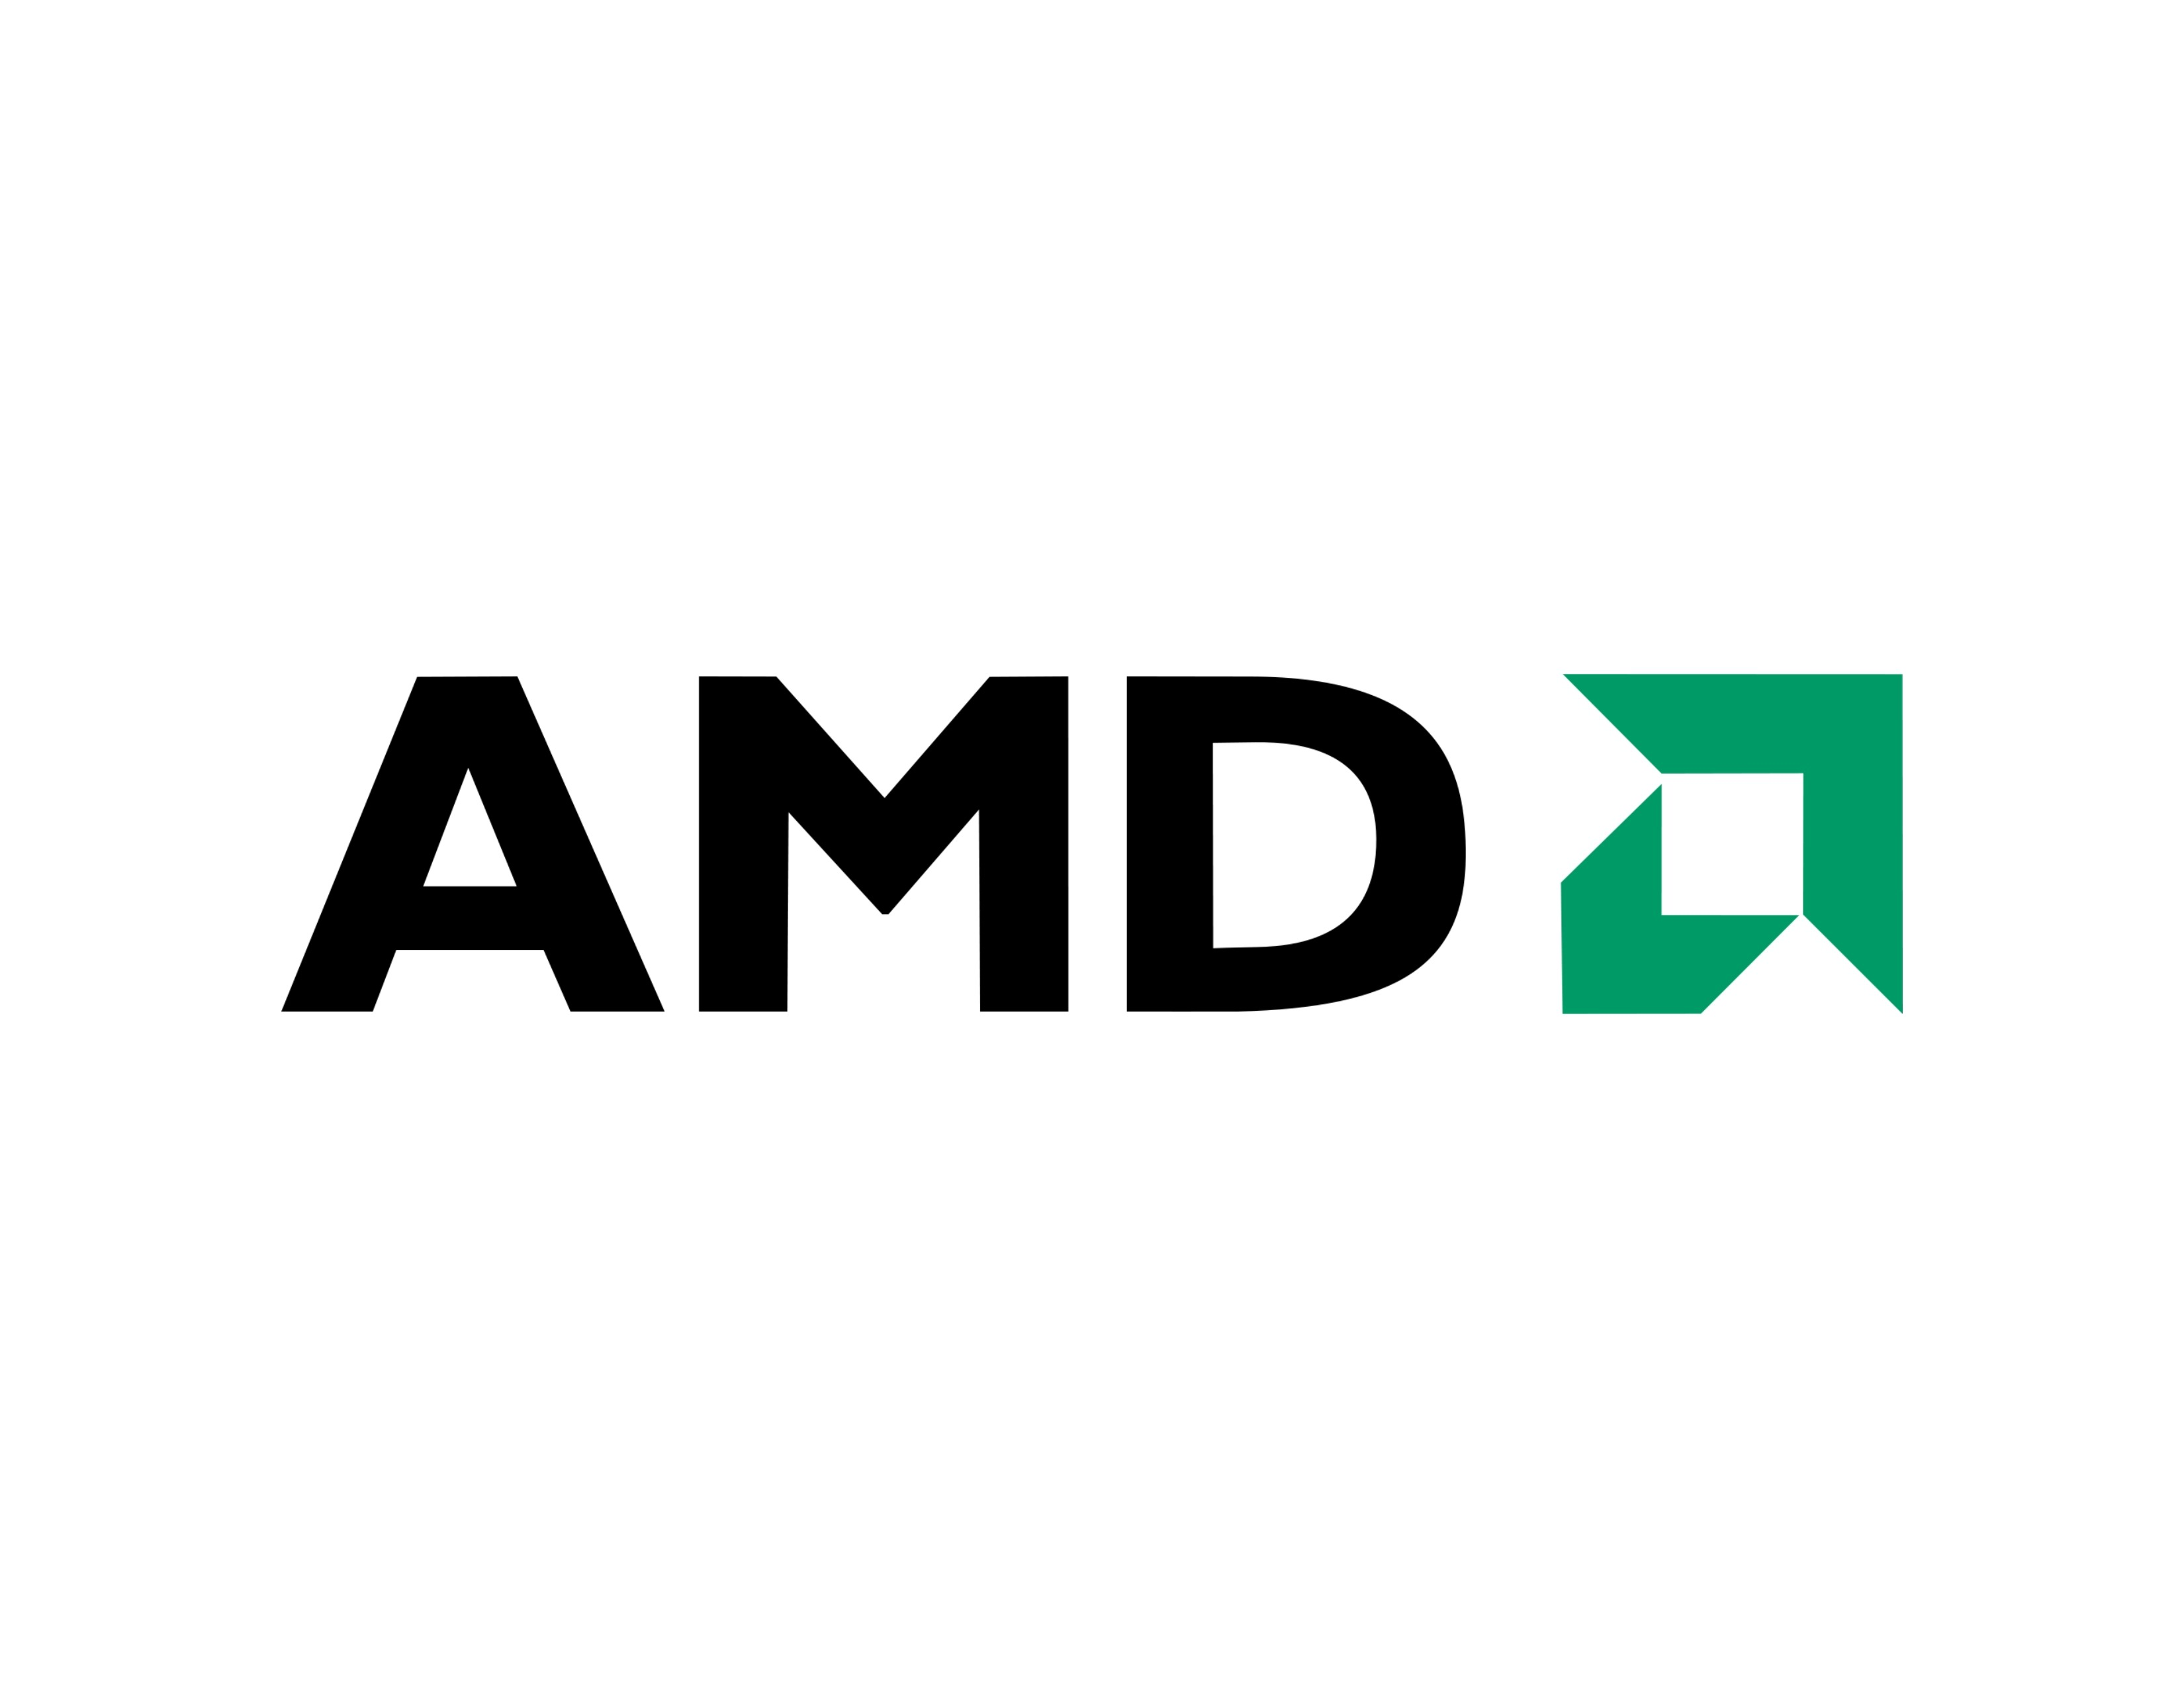 Drawn amd logo YouTube without How make in